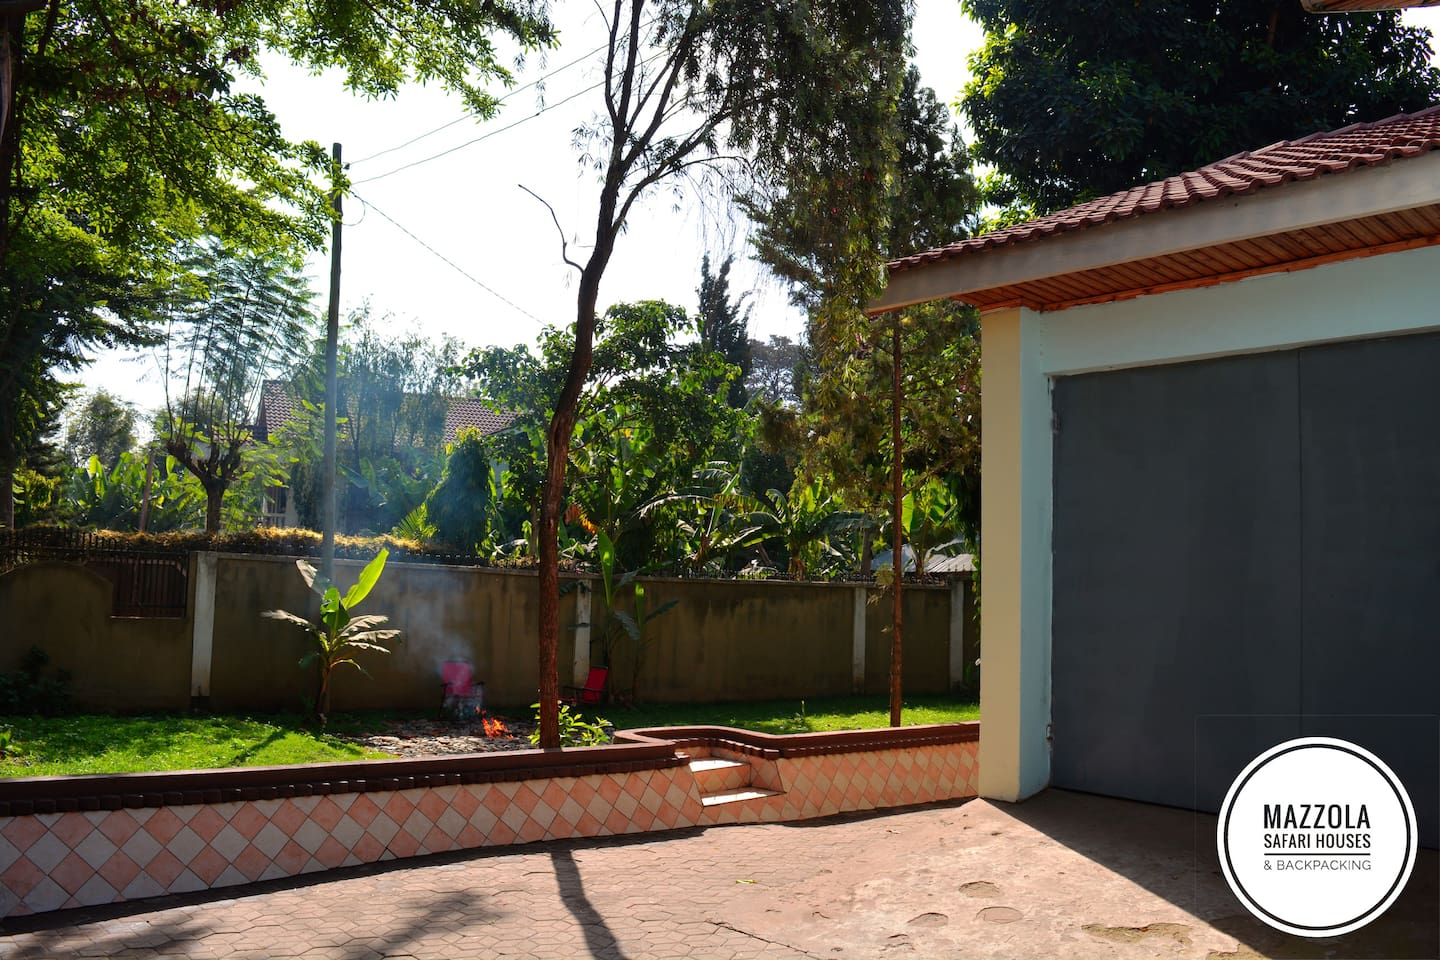 mazzola safari house and backpacking hostels for rent in arusha